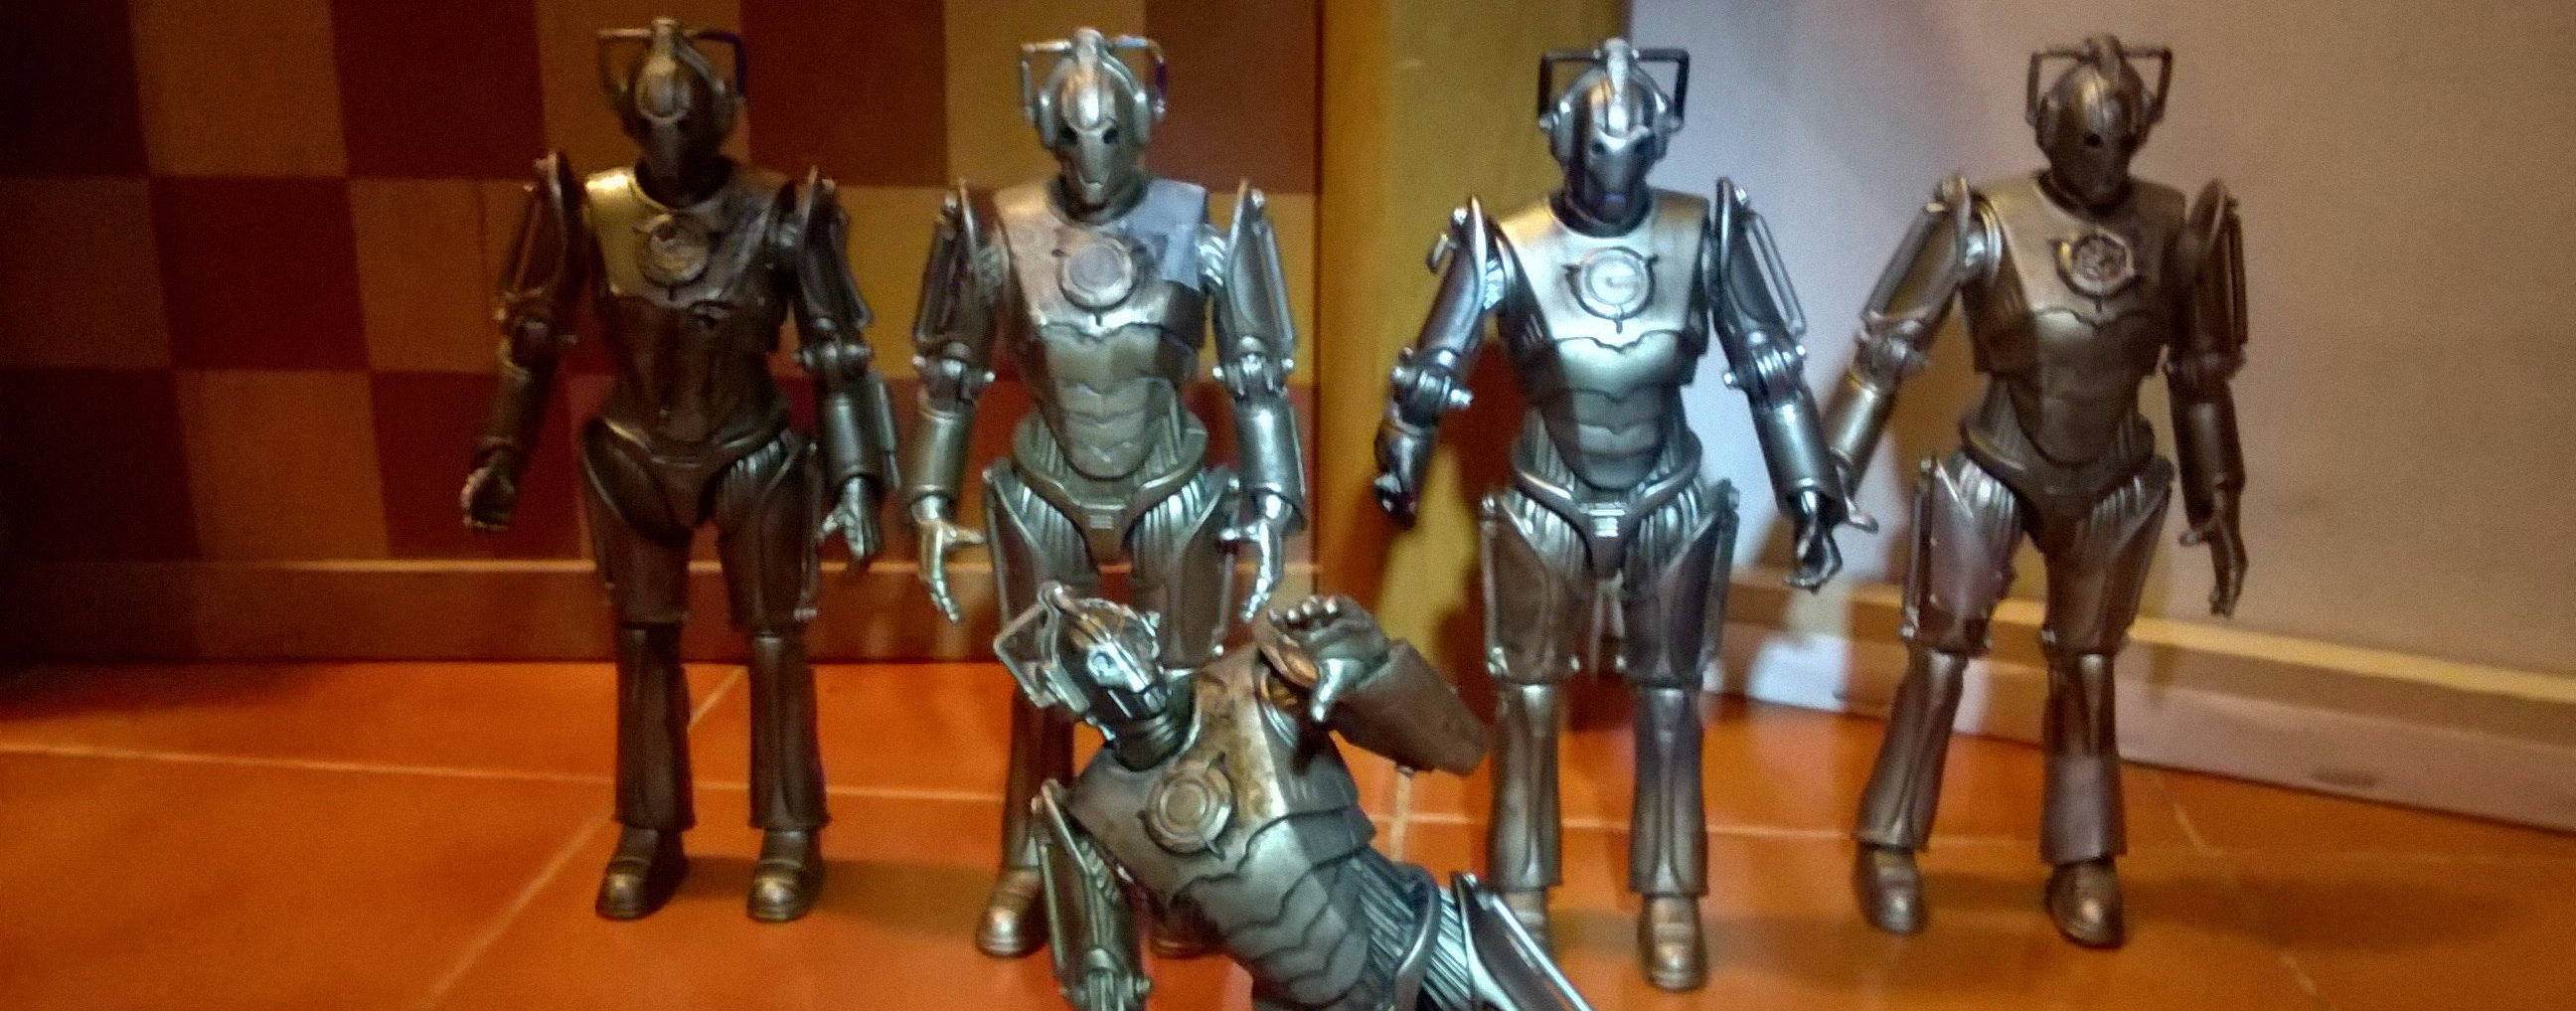 Damaged Cybermen Group